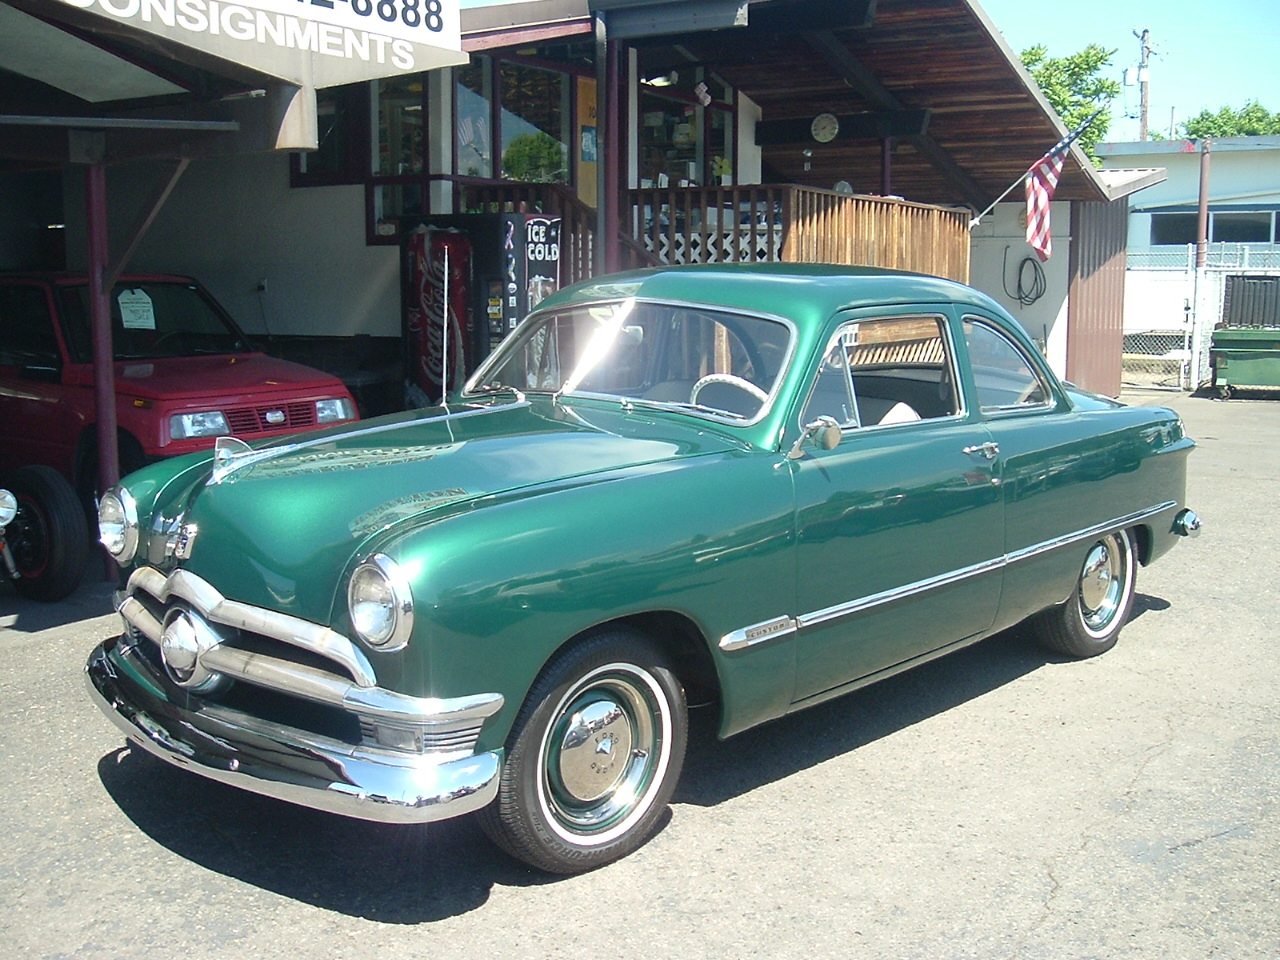 Hamilton Auto Sales 1949 Ford Car Gas Tank 1950 Club Coupe Flat Head V 8 3spd Manual Transmission Restored Approximately 12 Years Ago And Looks Fresh Body Paint Excellent Solid With